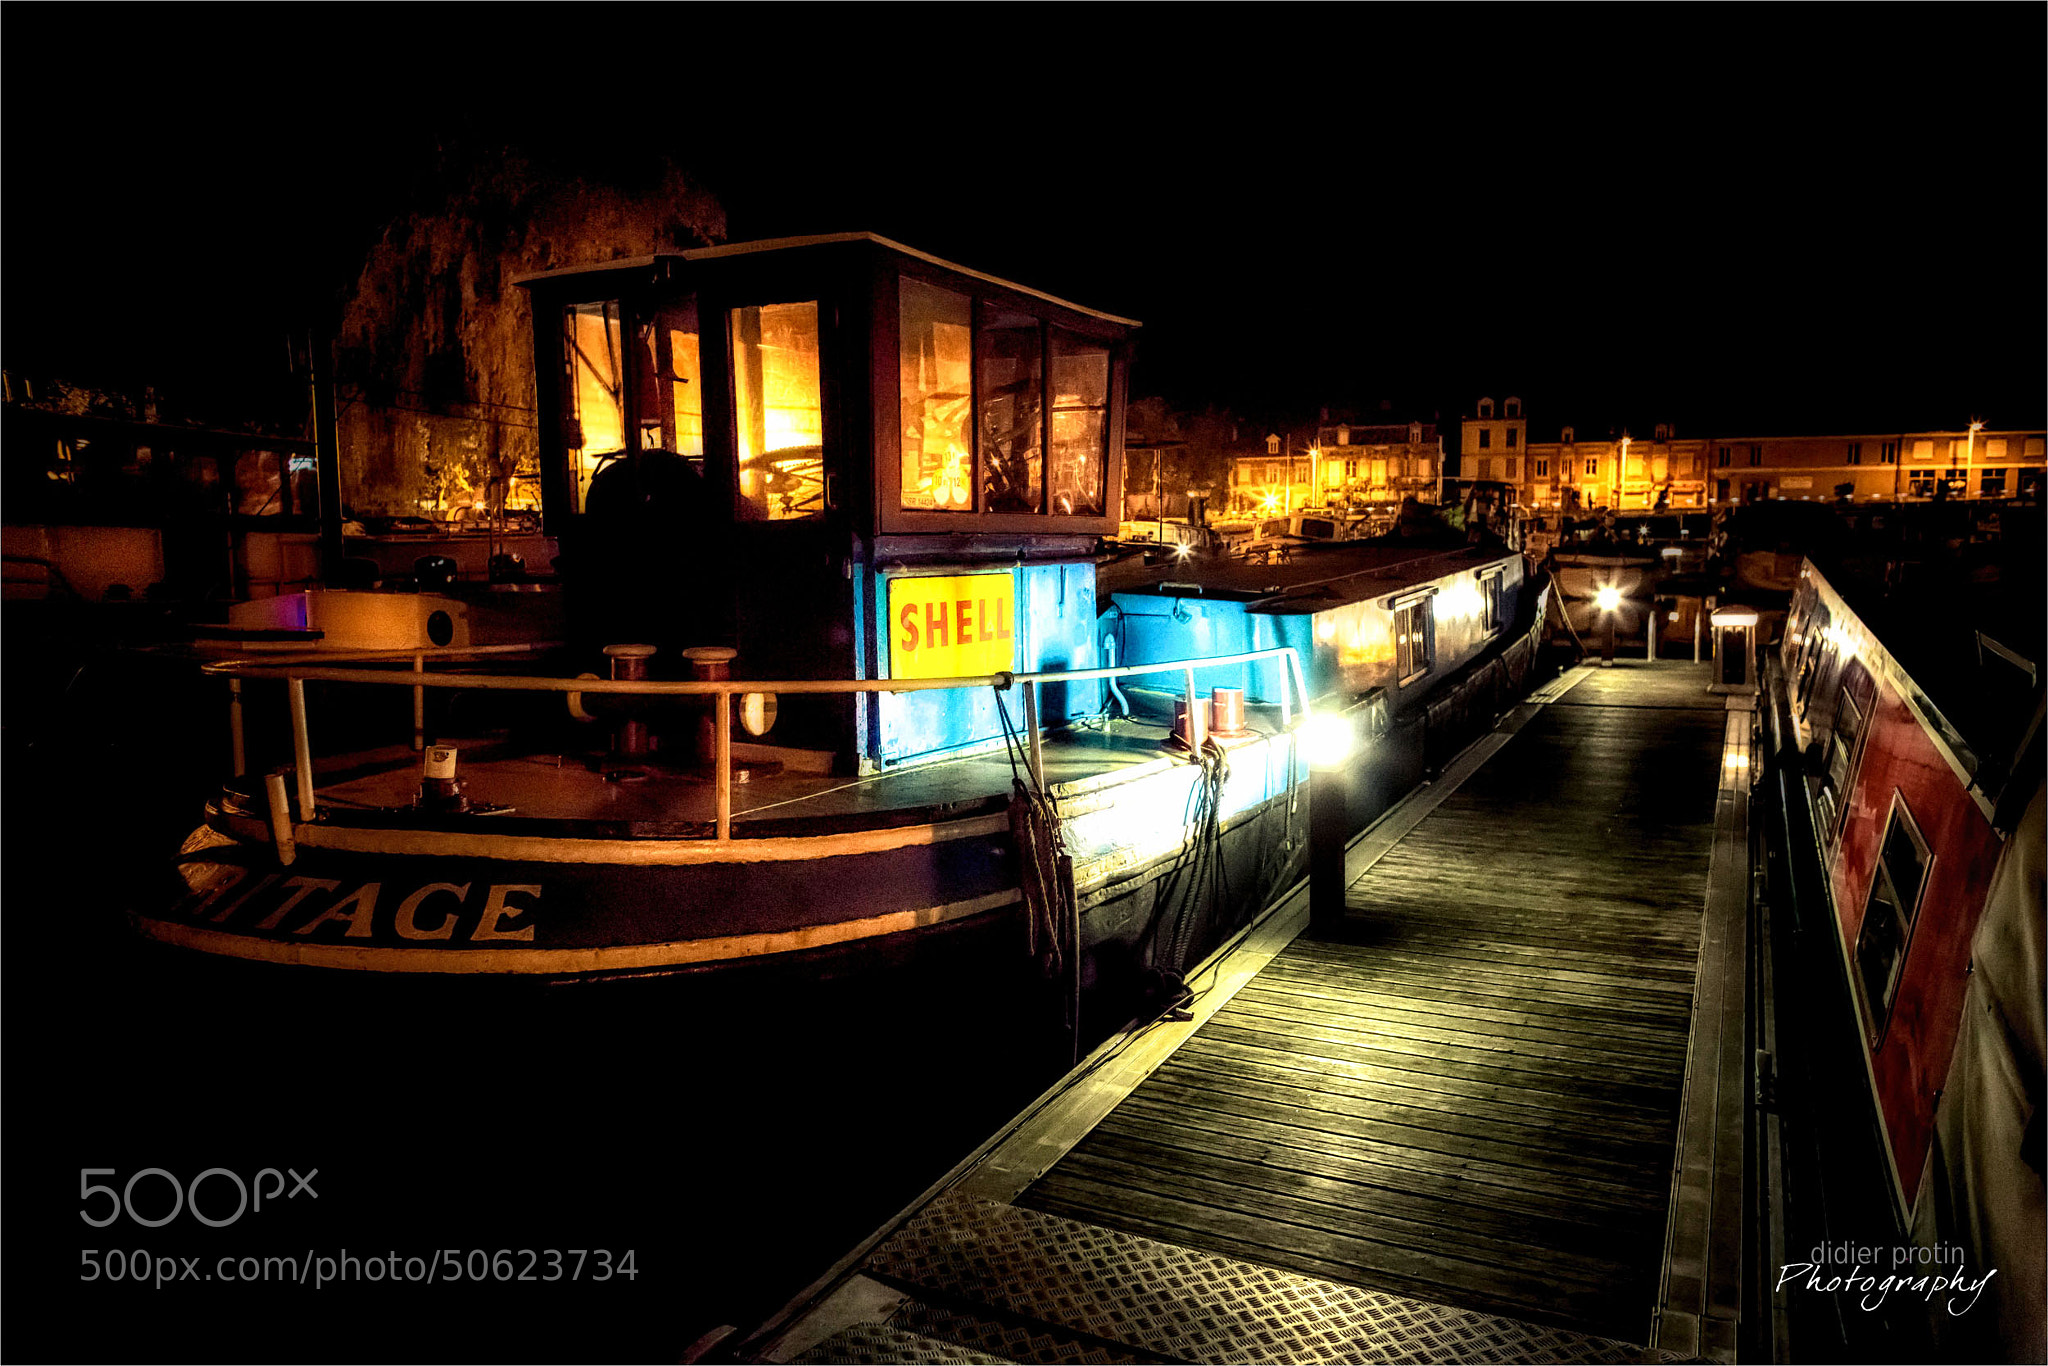 Photograph Le port by Didier Protin on 500px